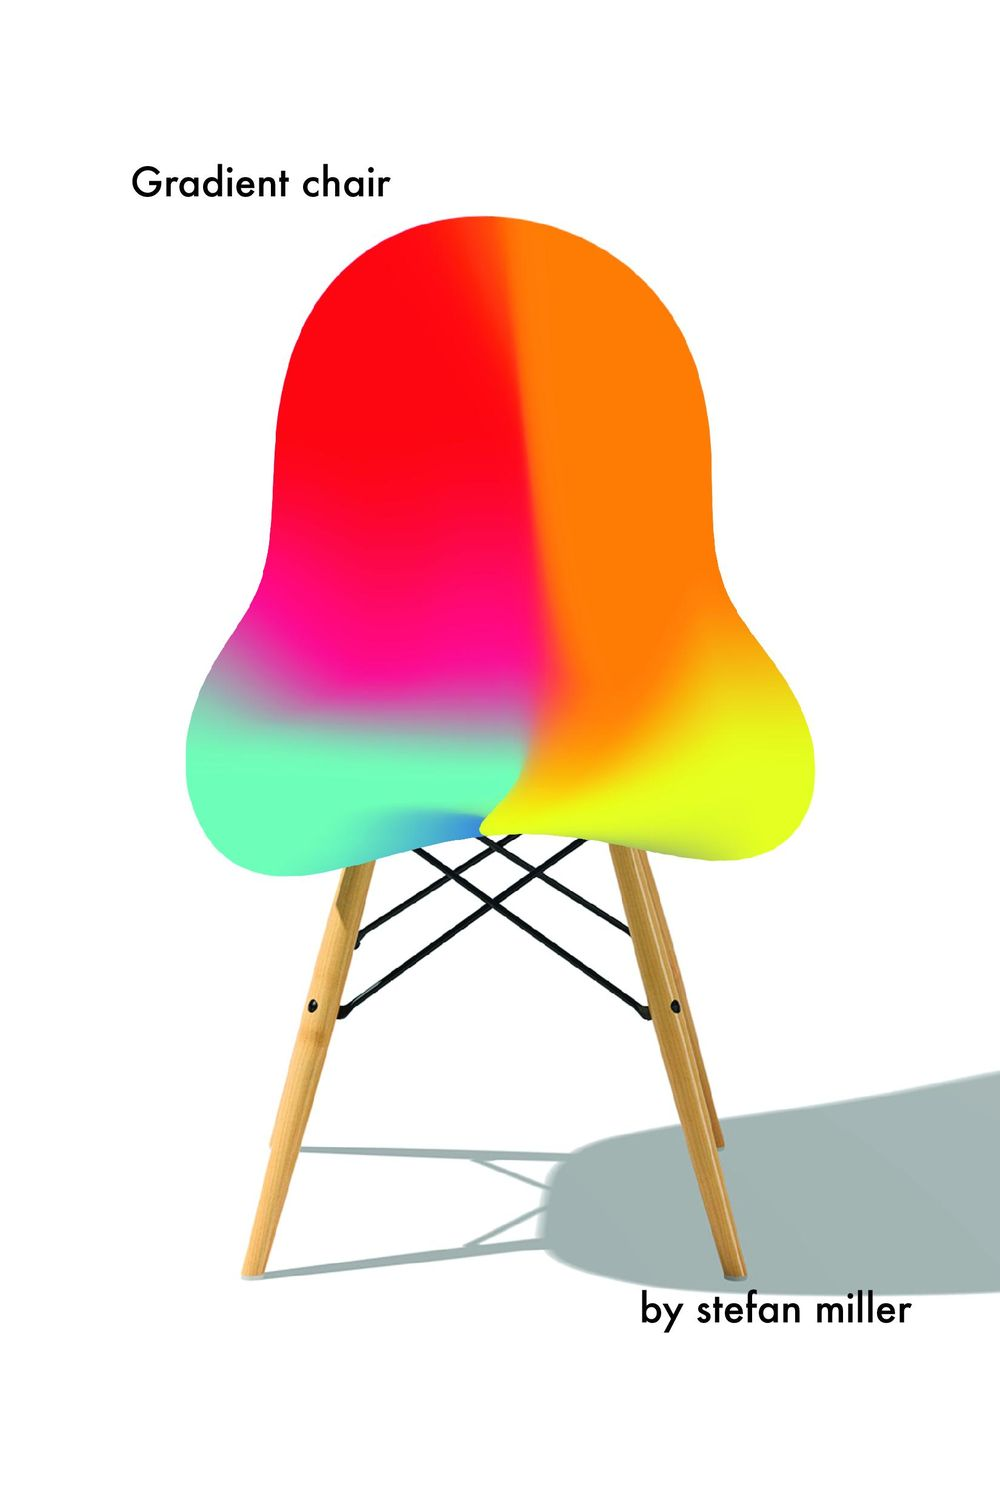 Gradient chair. - image 1 - student project